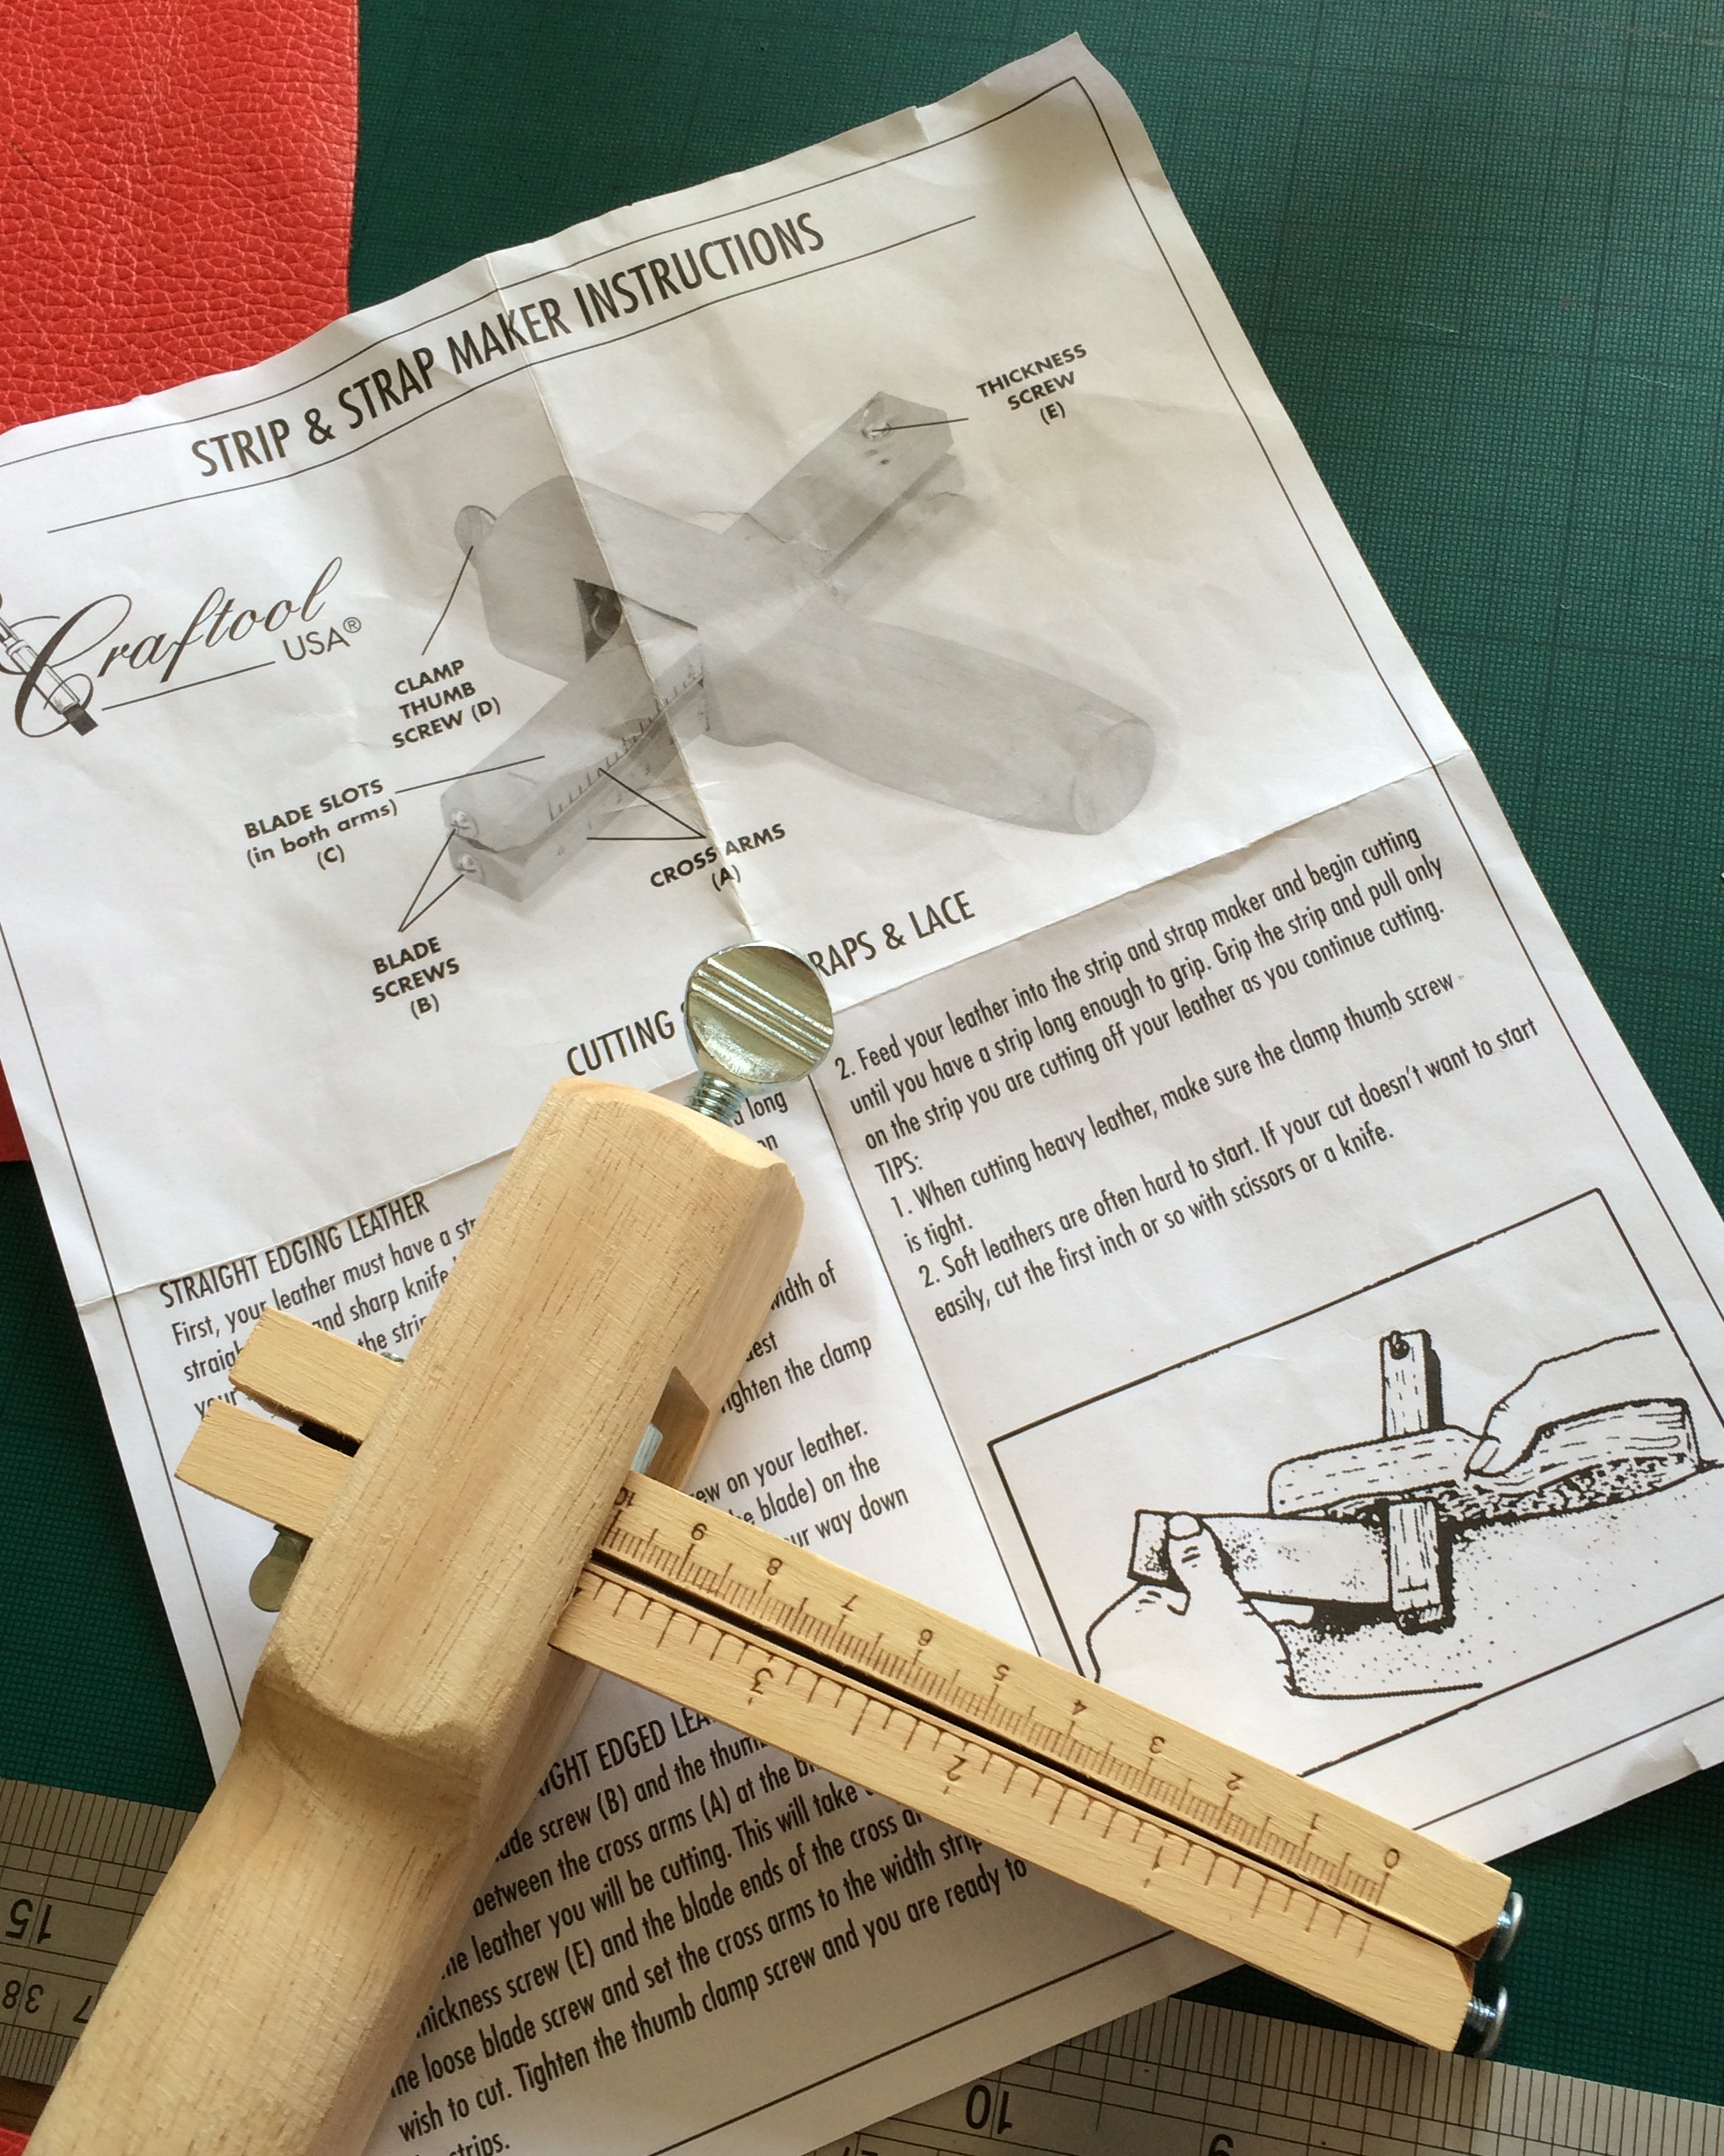 The fantastic strap cutter, which eliminates all the stress of cutting long strips accurately! You can just about see how it works from the bottom diagram on the instruction sheet.